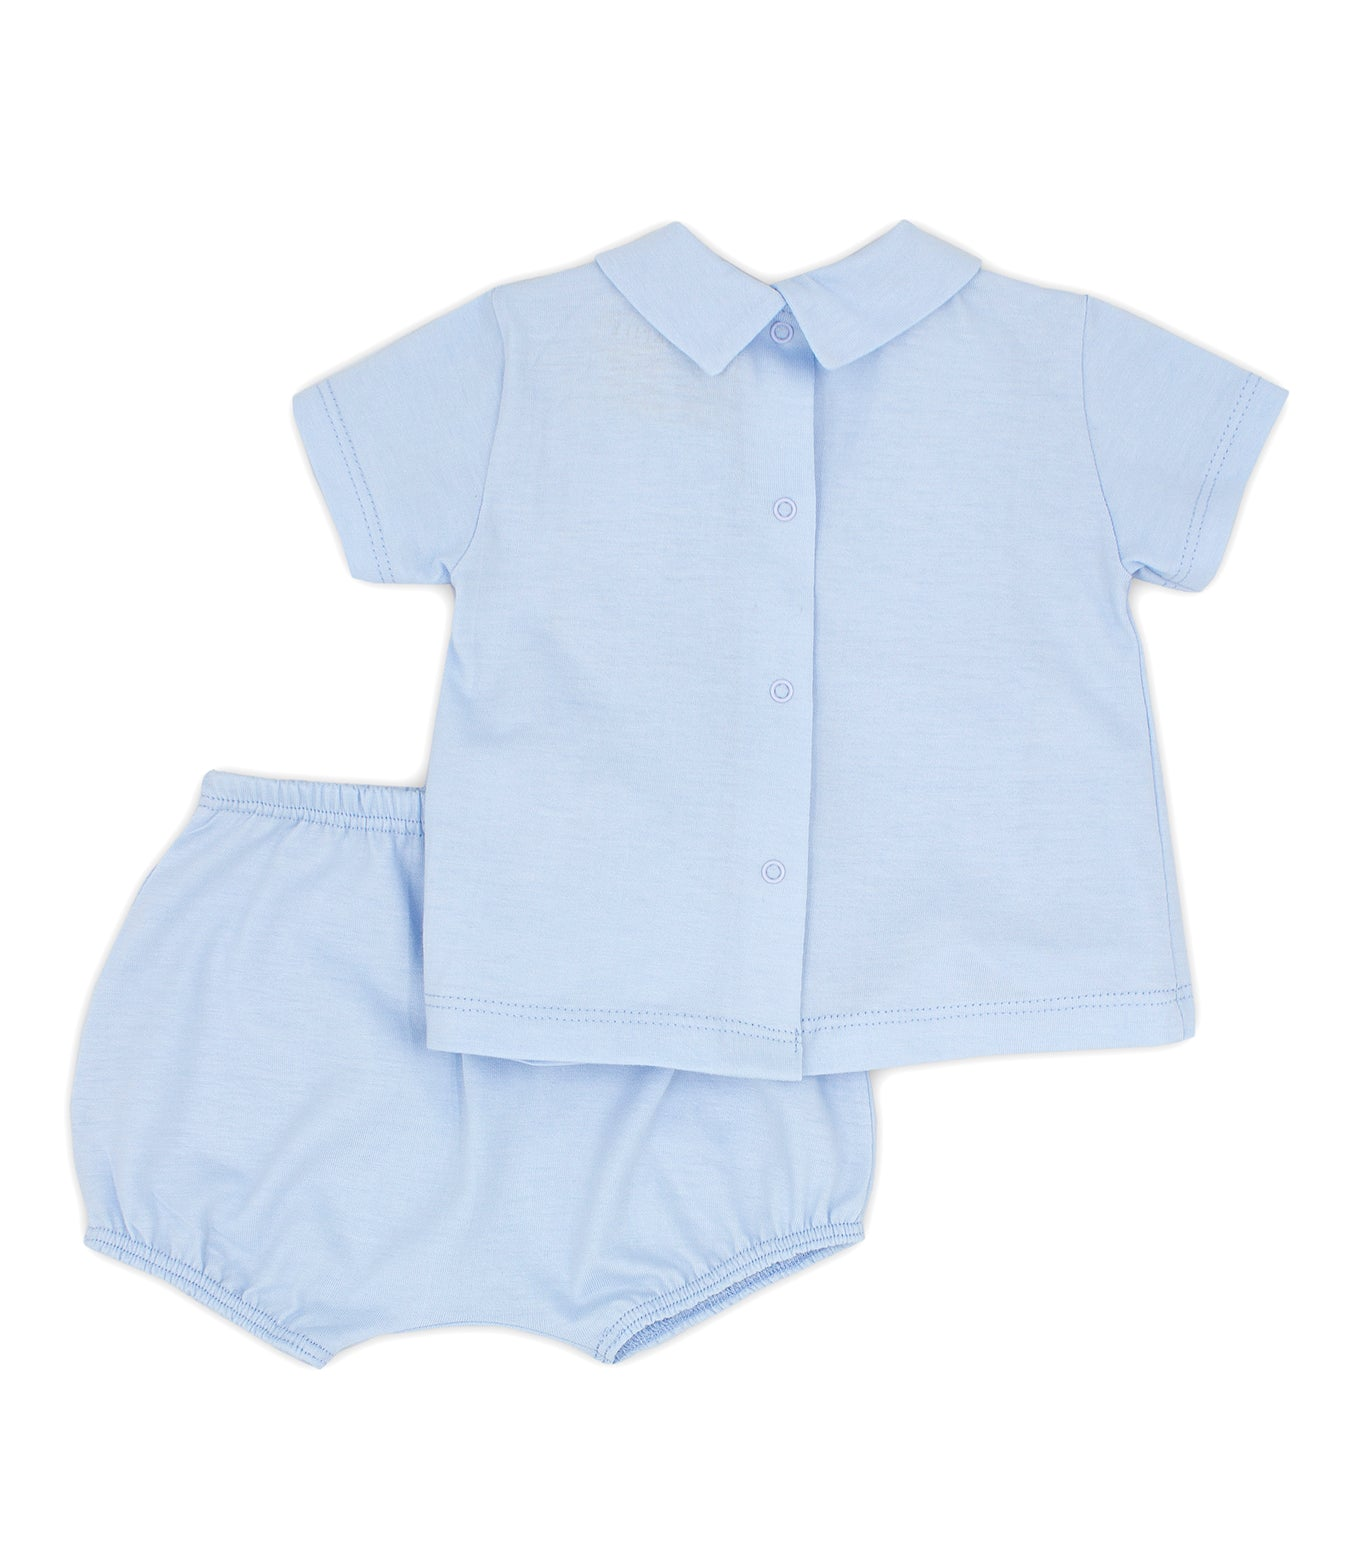 RAPIFE 4114 T-SHIRT AND BLOOMERS SKY BLUE